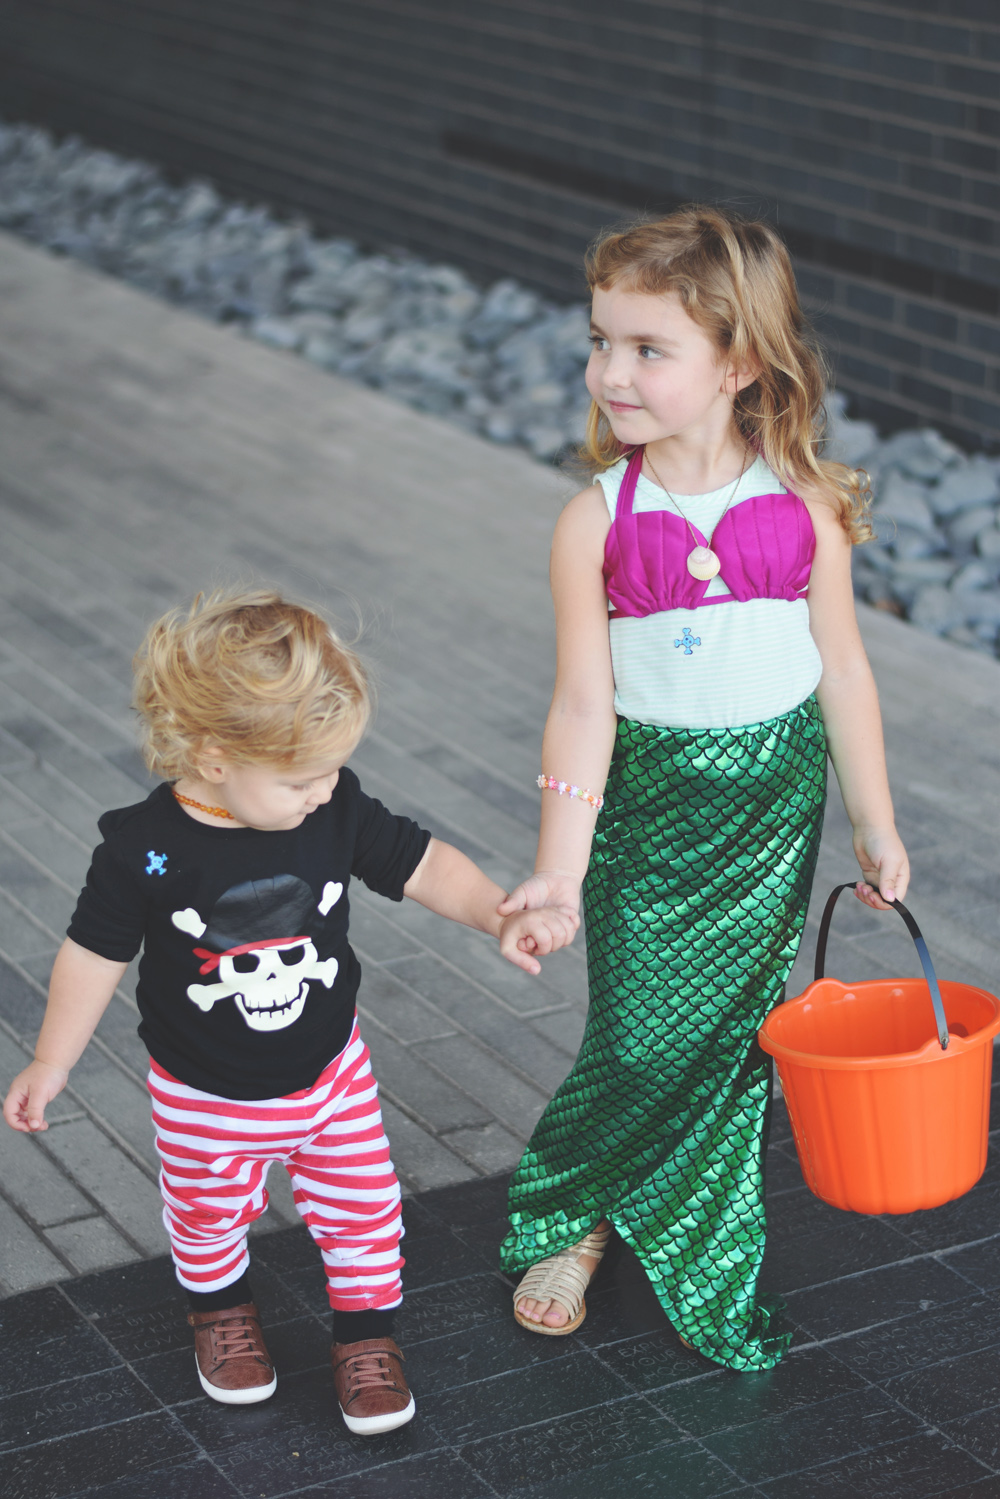 happy halloween from the sweetest little mermaid and pirate i ever did SEA!!